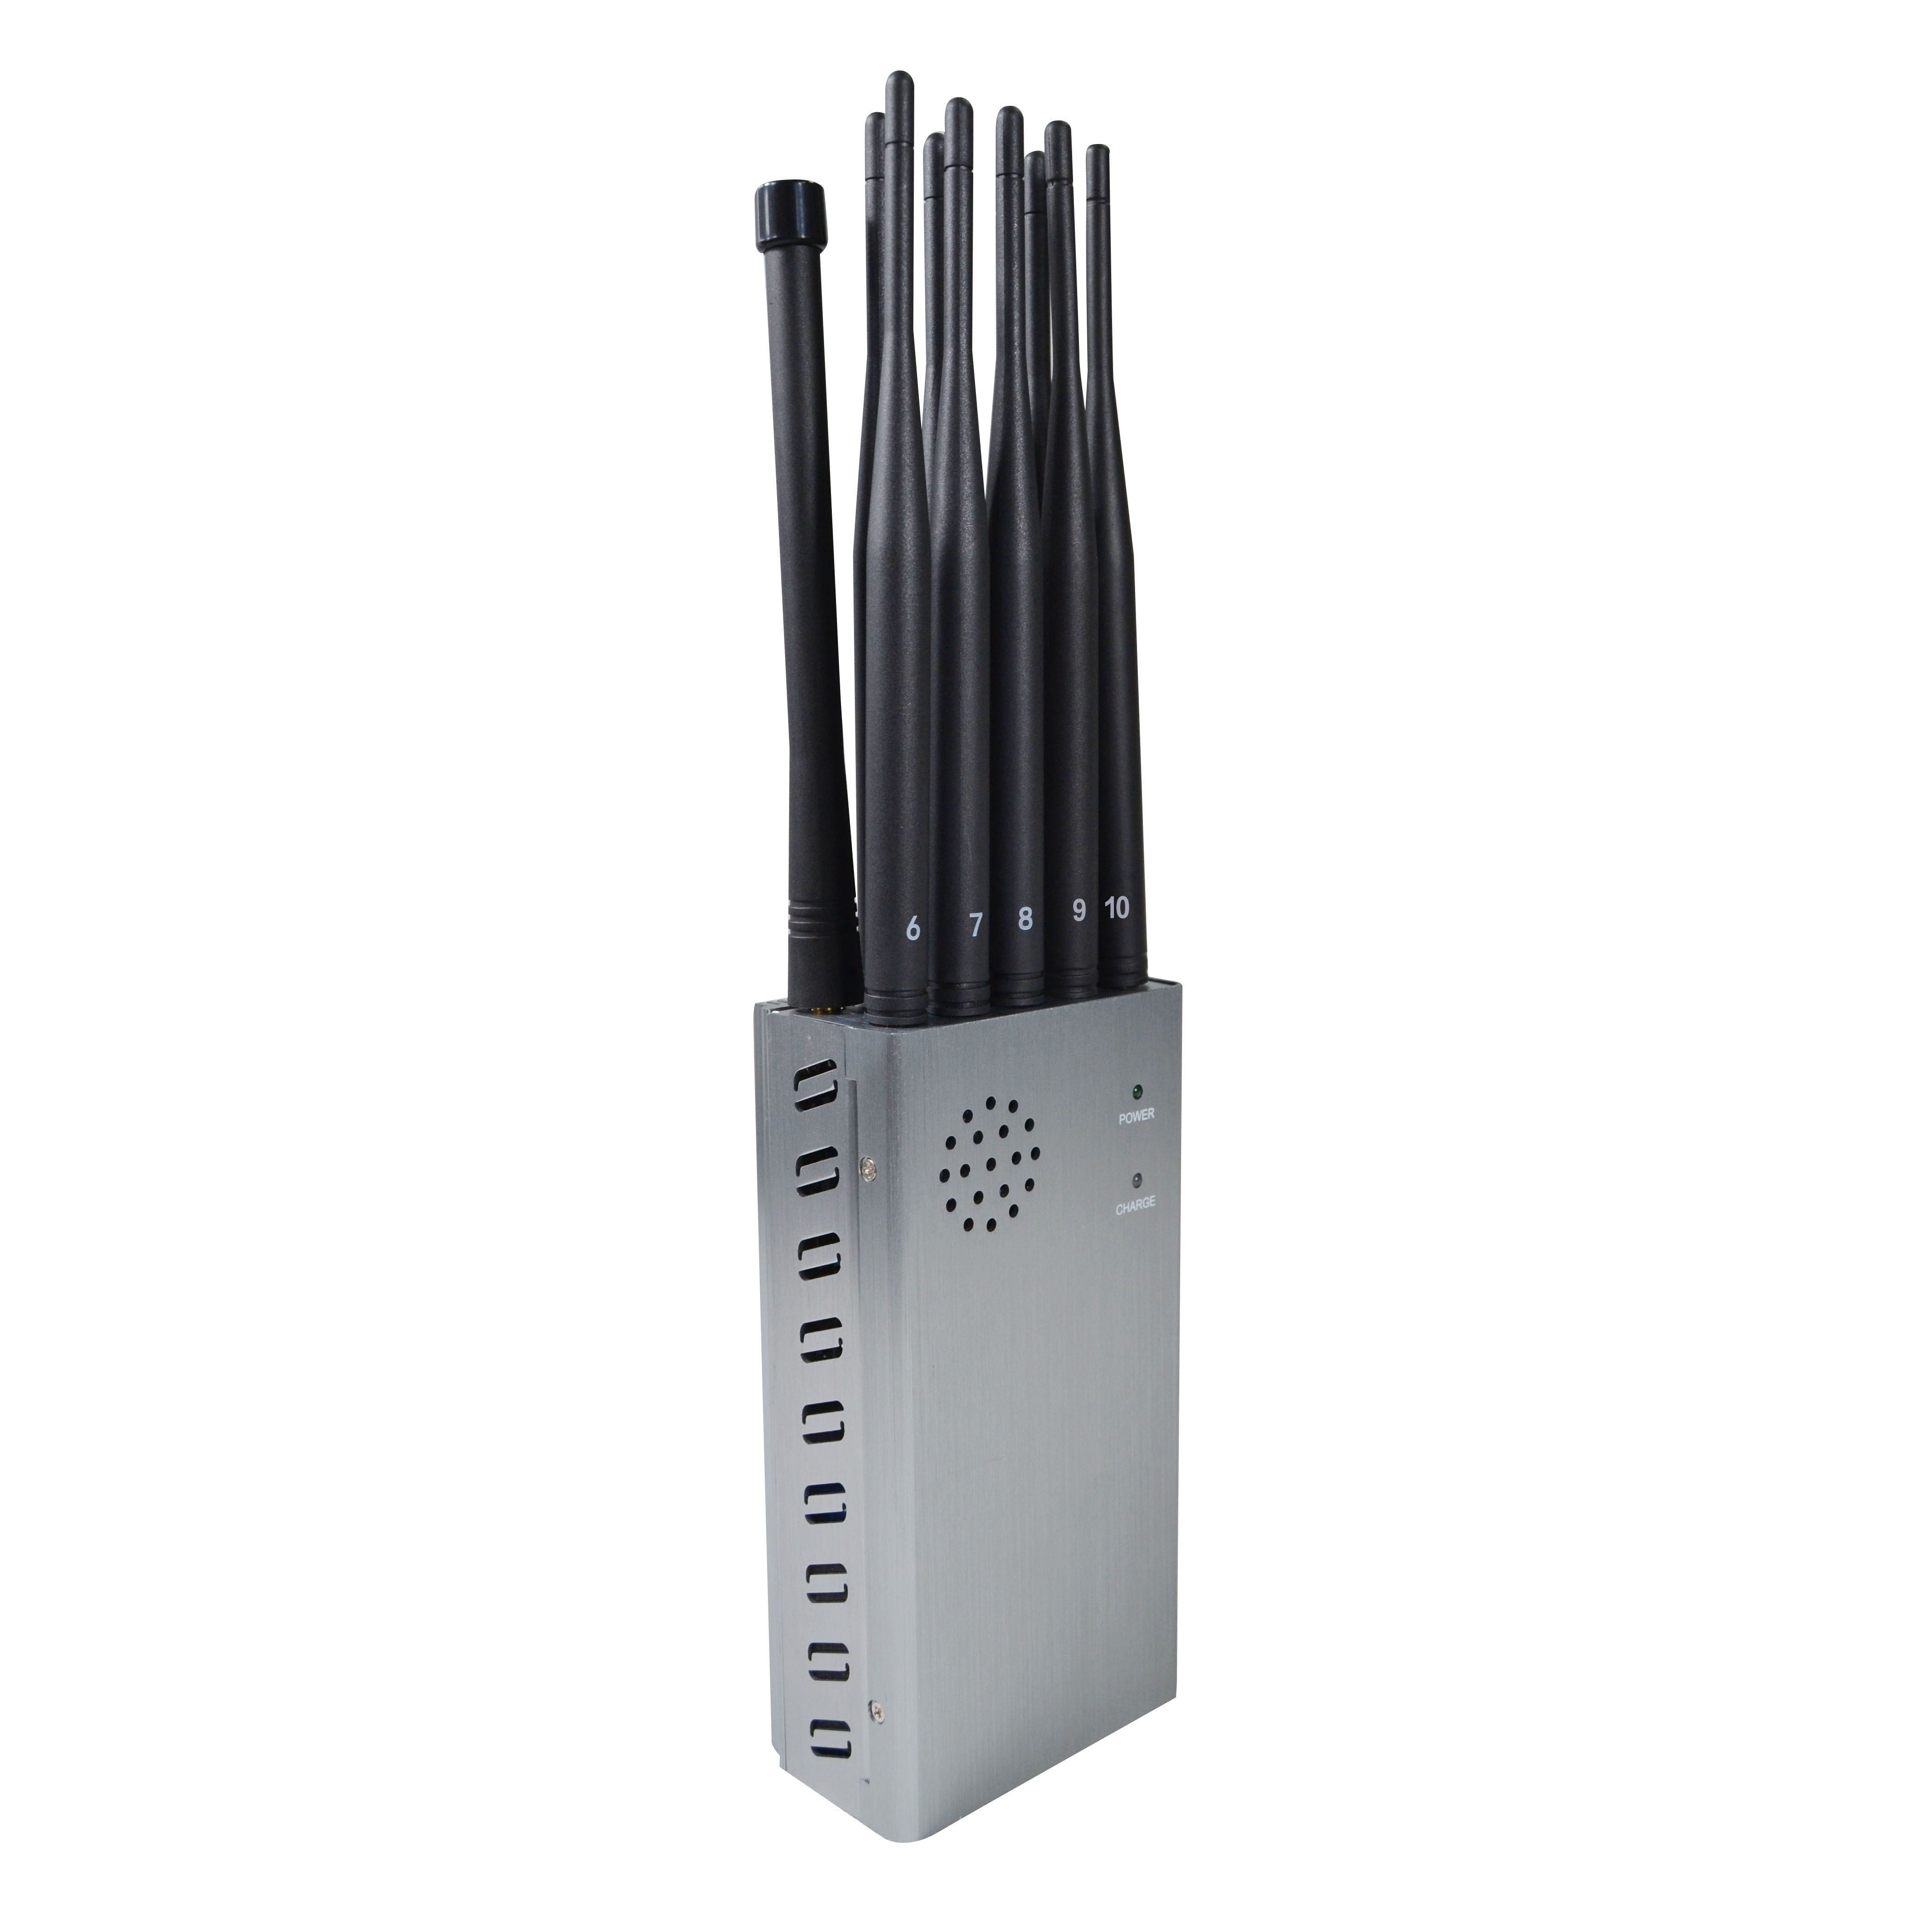 phone mobile jammer tools